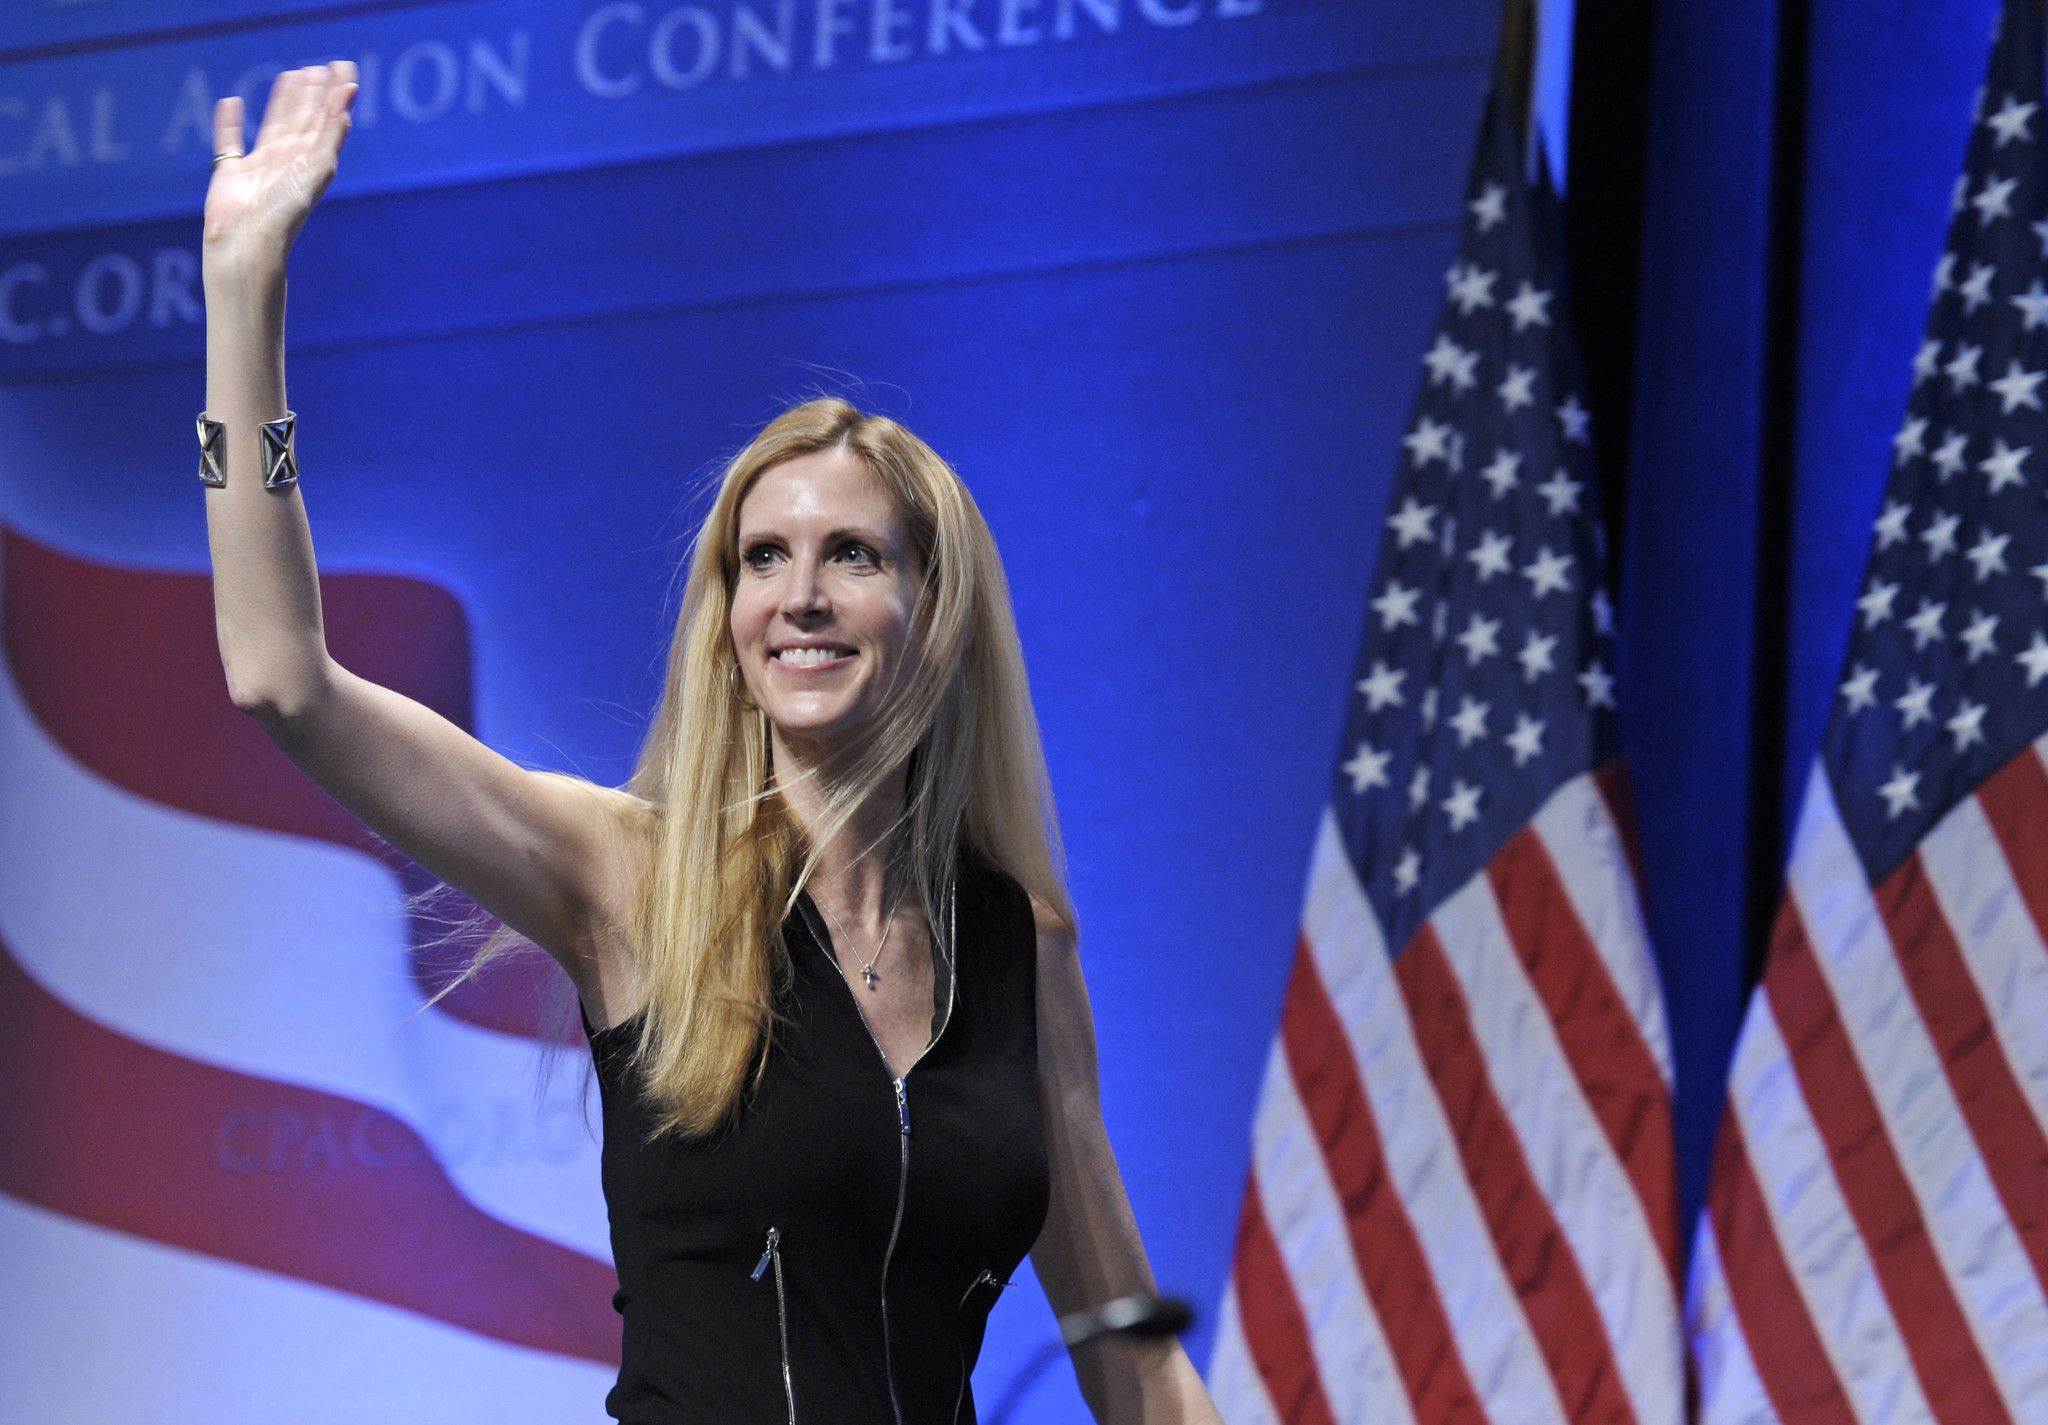 UC Berkeley reverses decision to cancel Ann Coulter visit